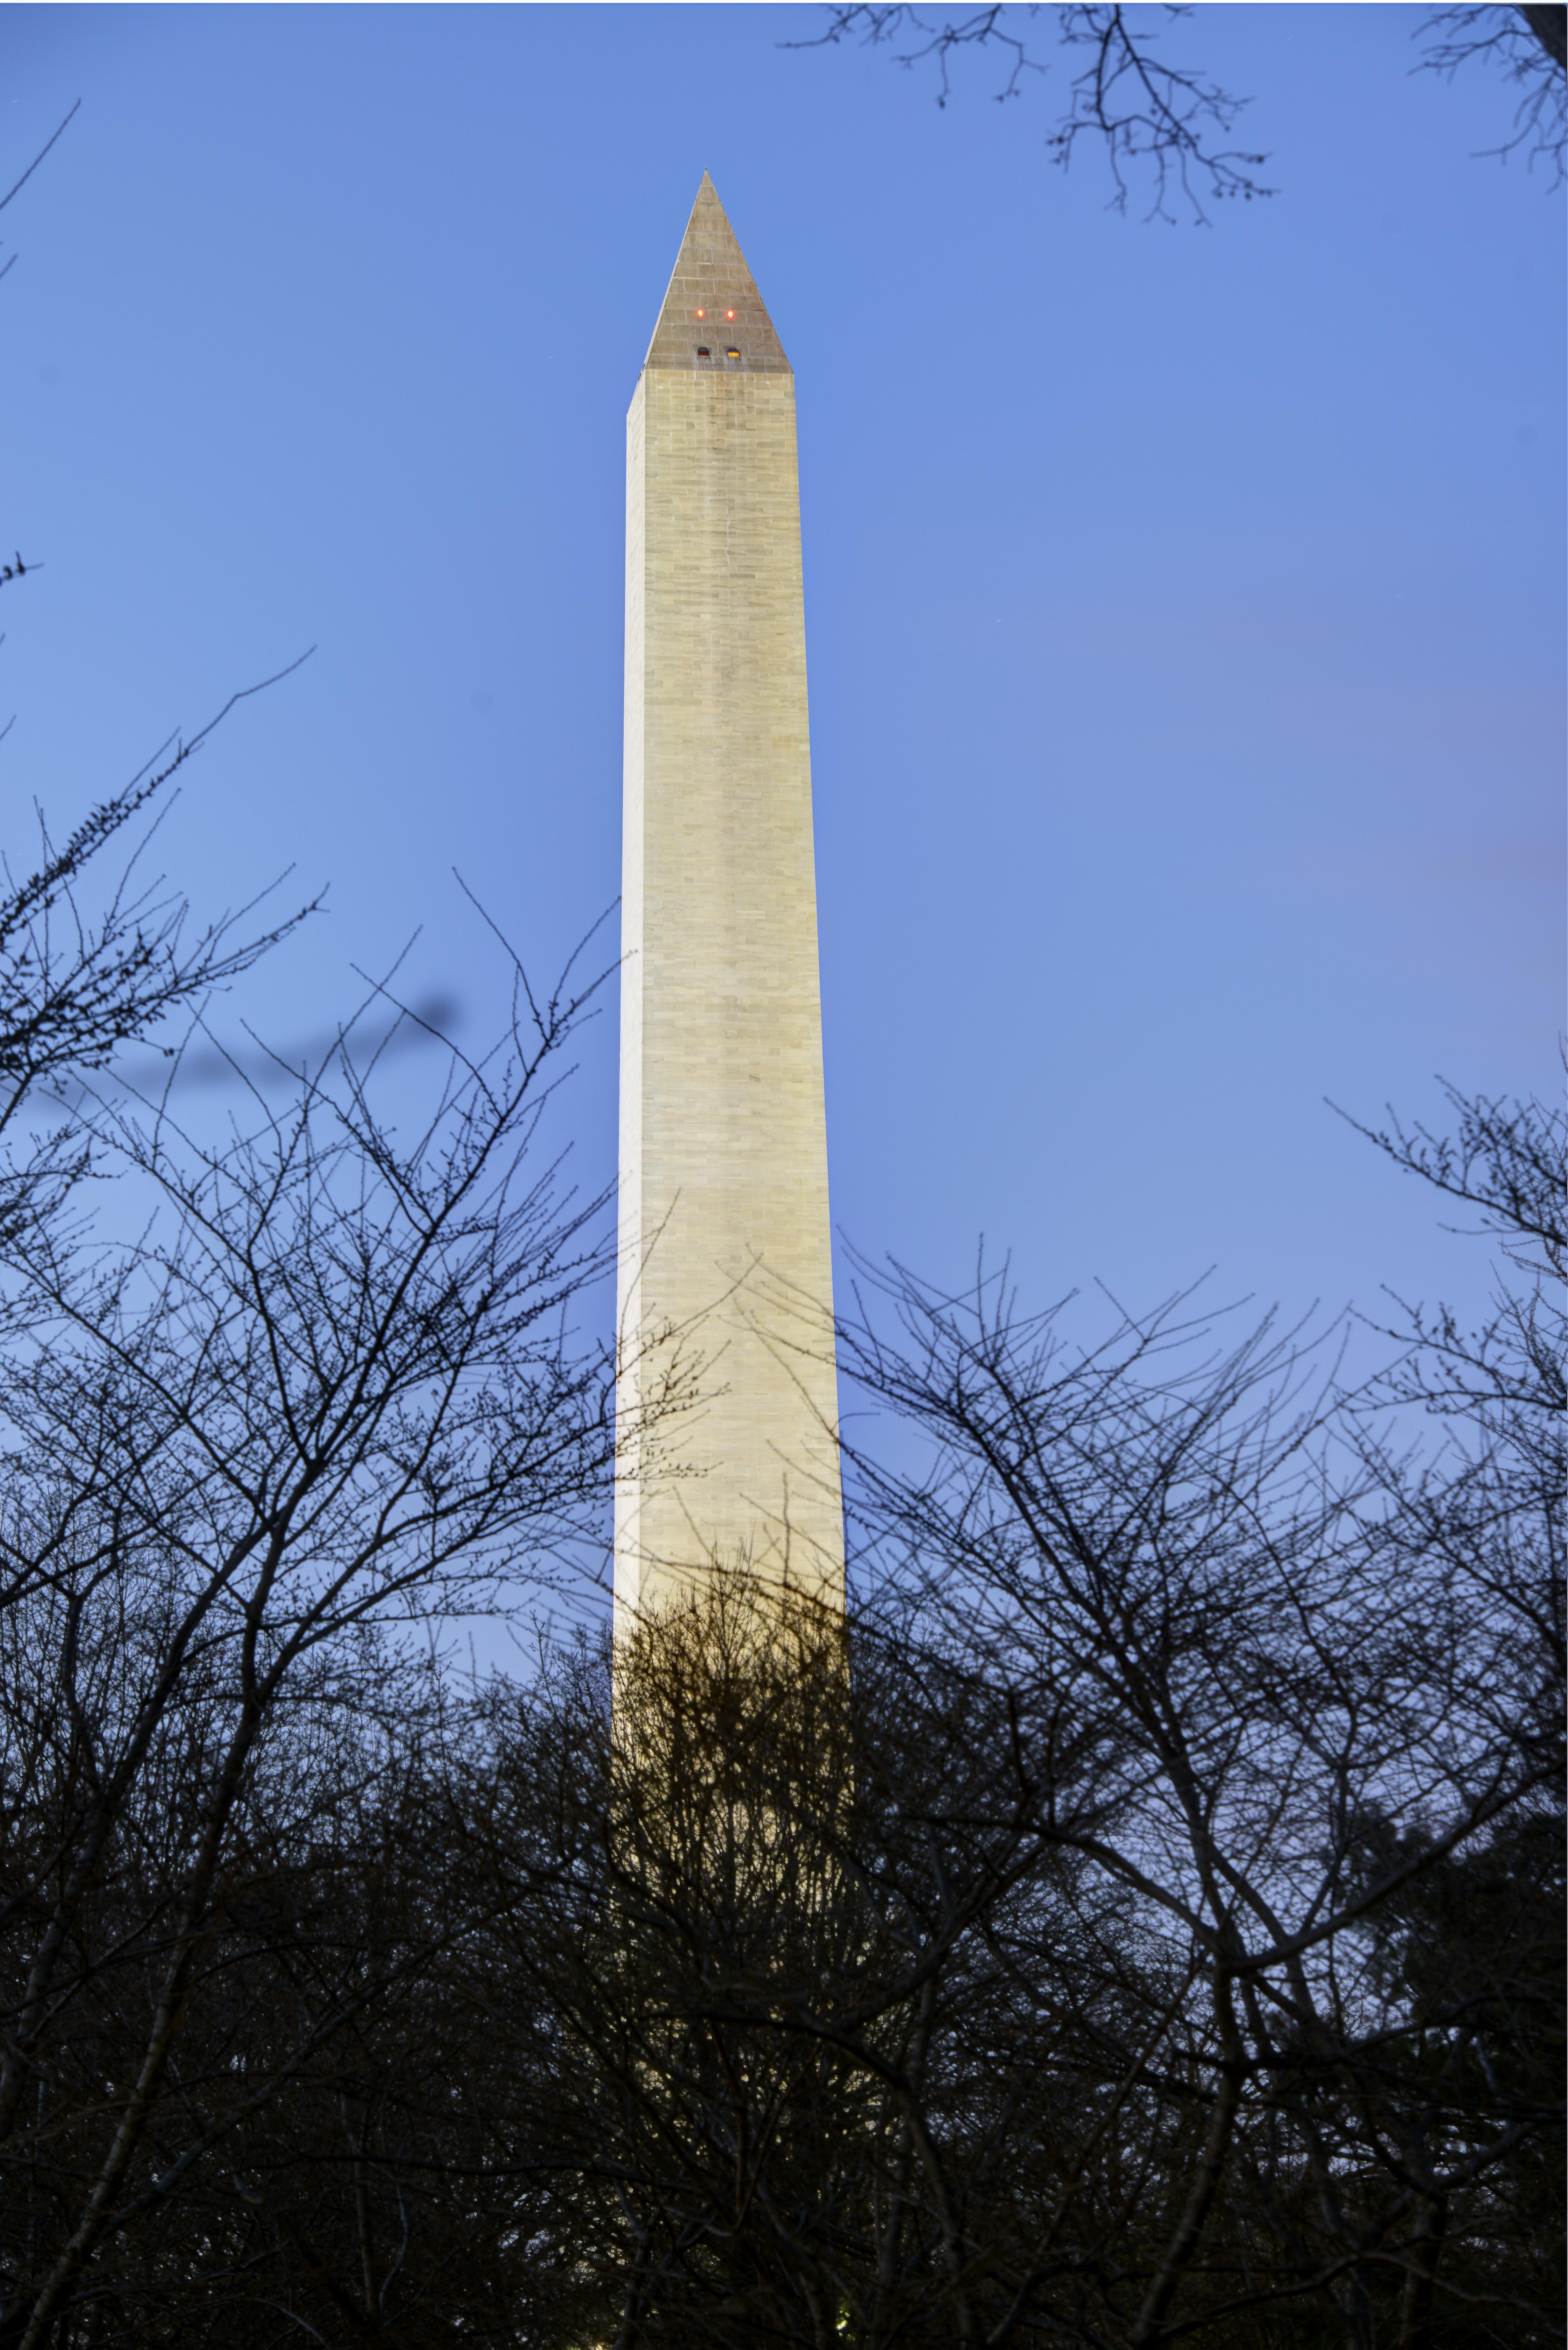 Washington Monument - Copyright Gerard McIntyre, 2014, All rights reserved.